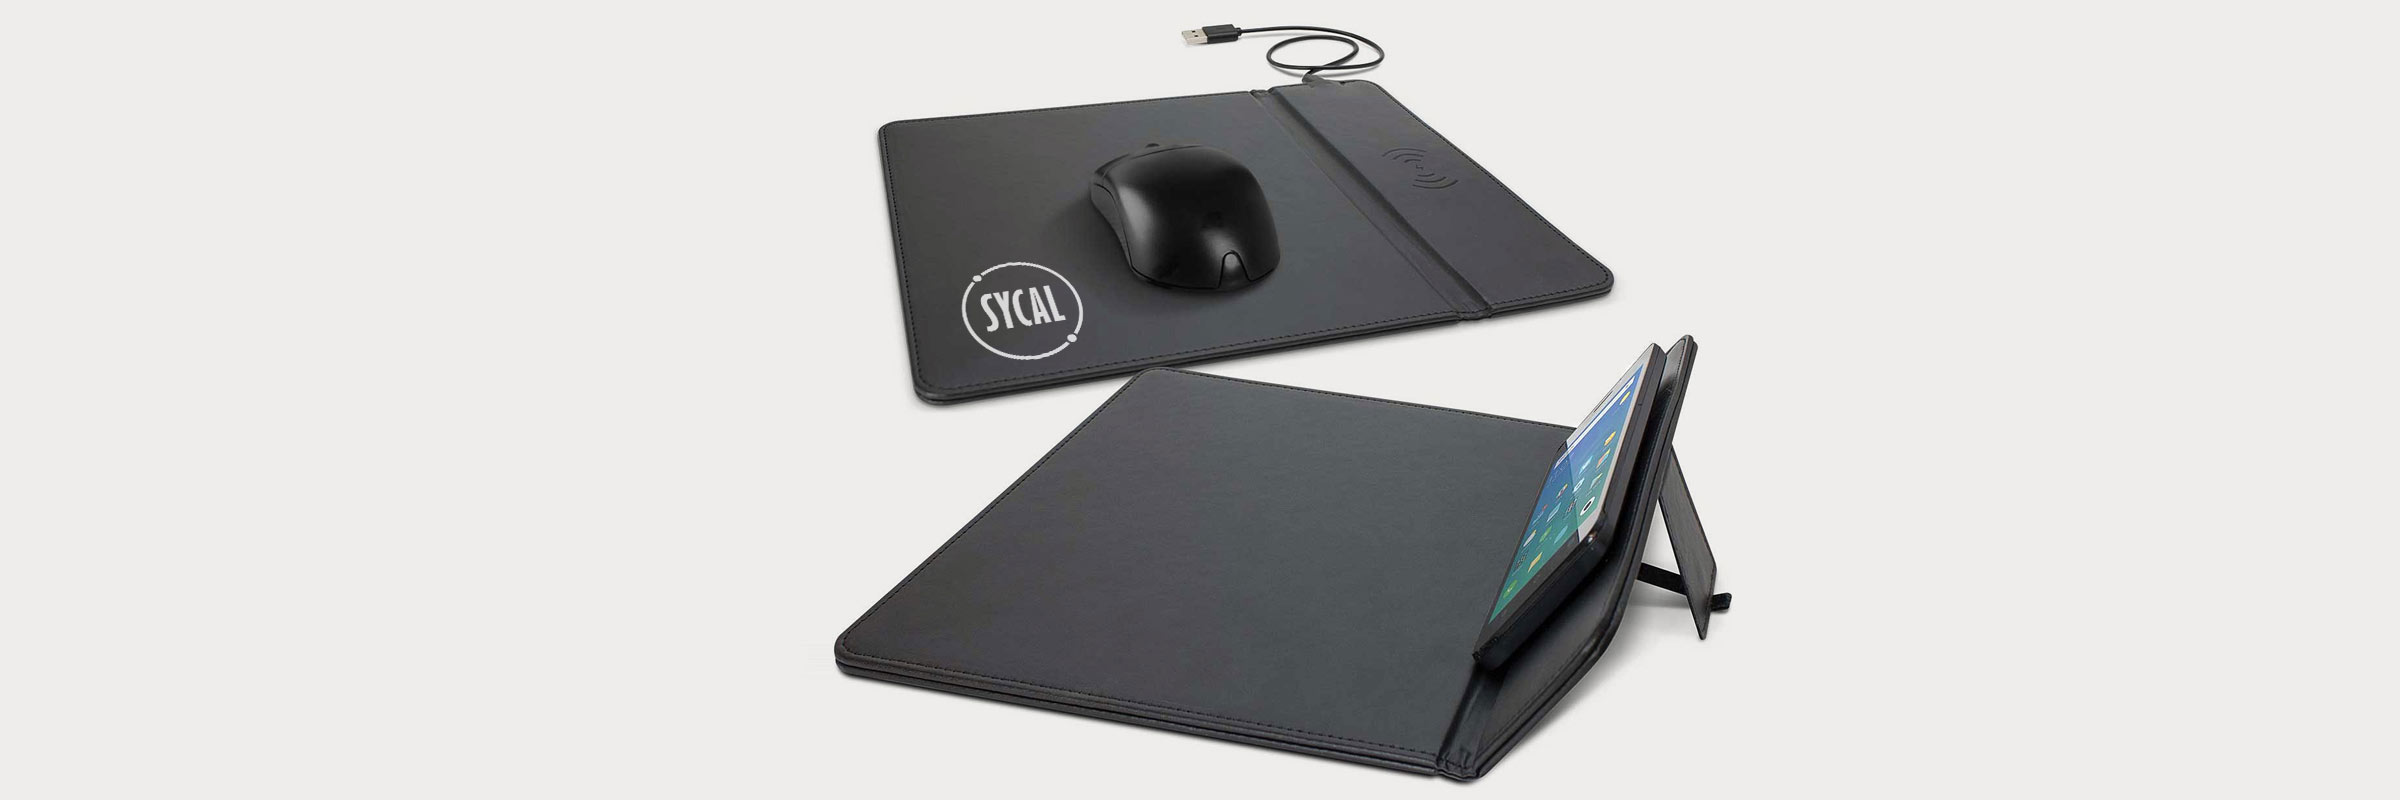 branded mouse mat with wireless charger